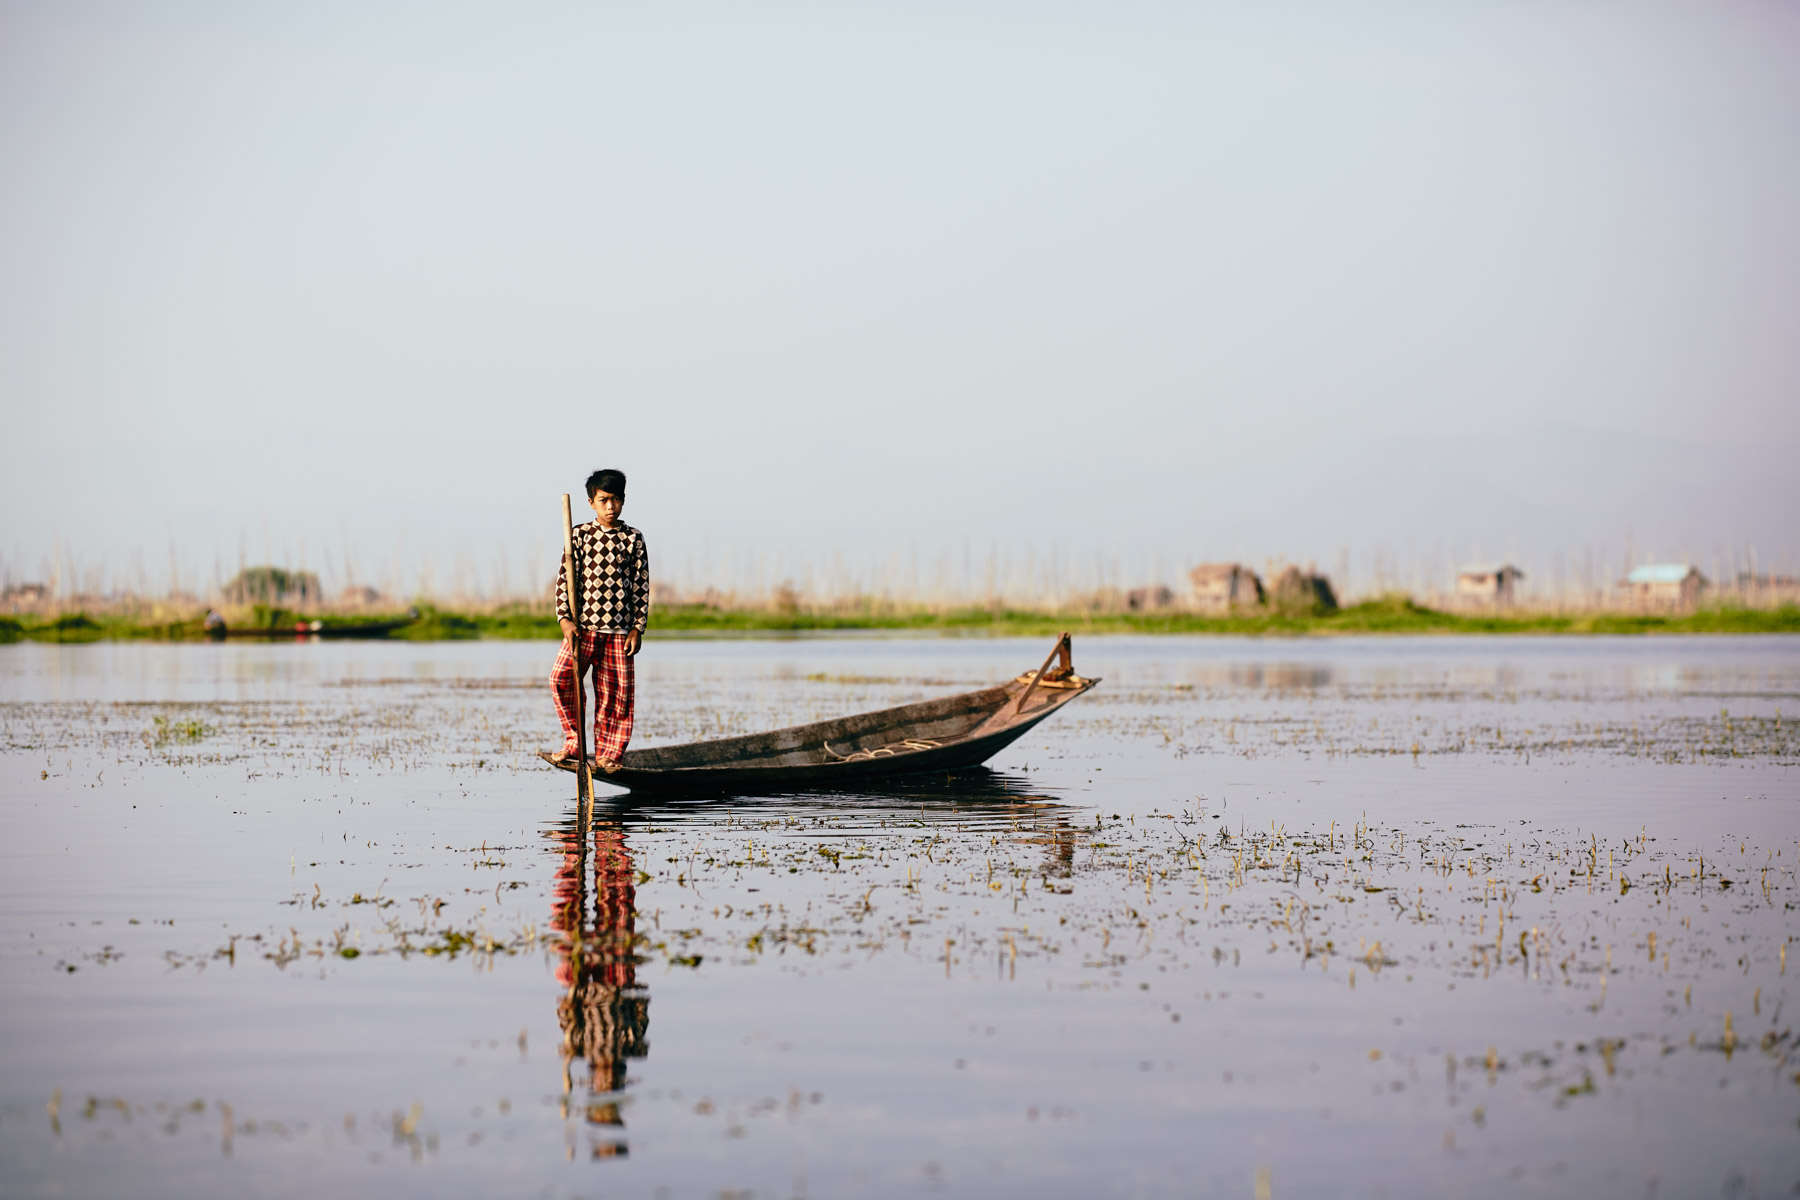 Junge an der Spitze seines Bootes am Inle See/ Shan Staat/ Myanmar, 2015